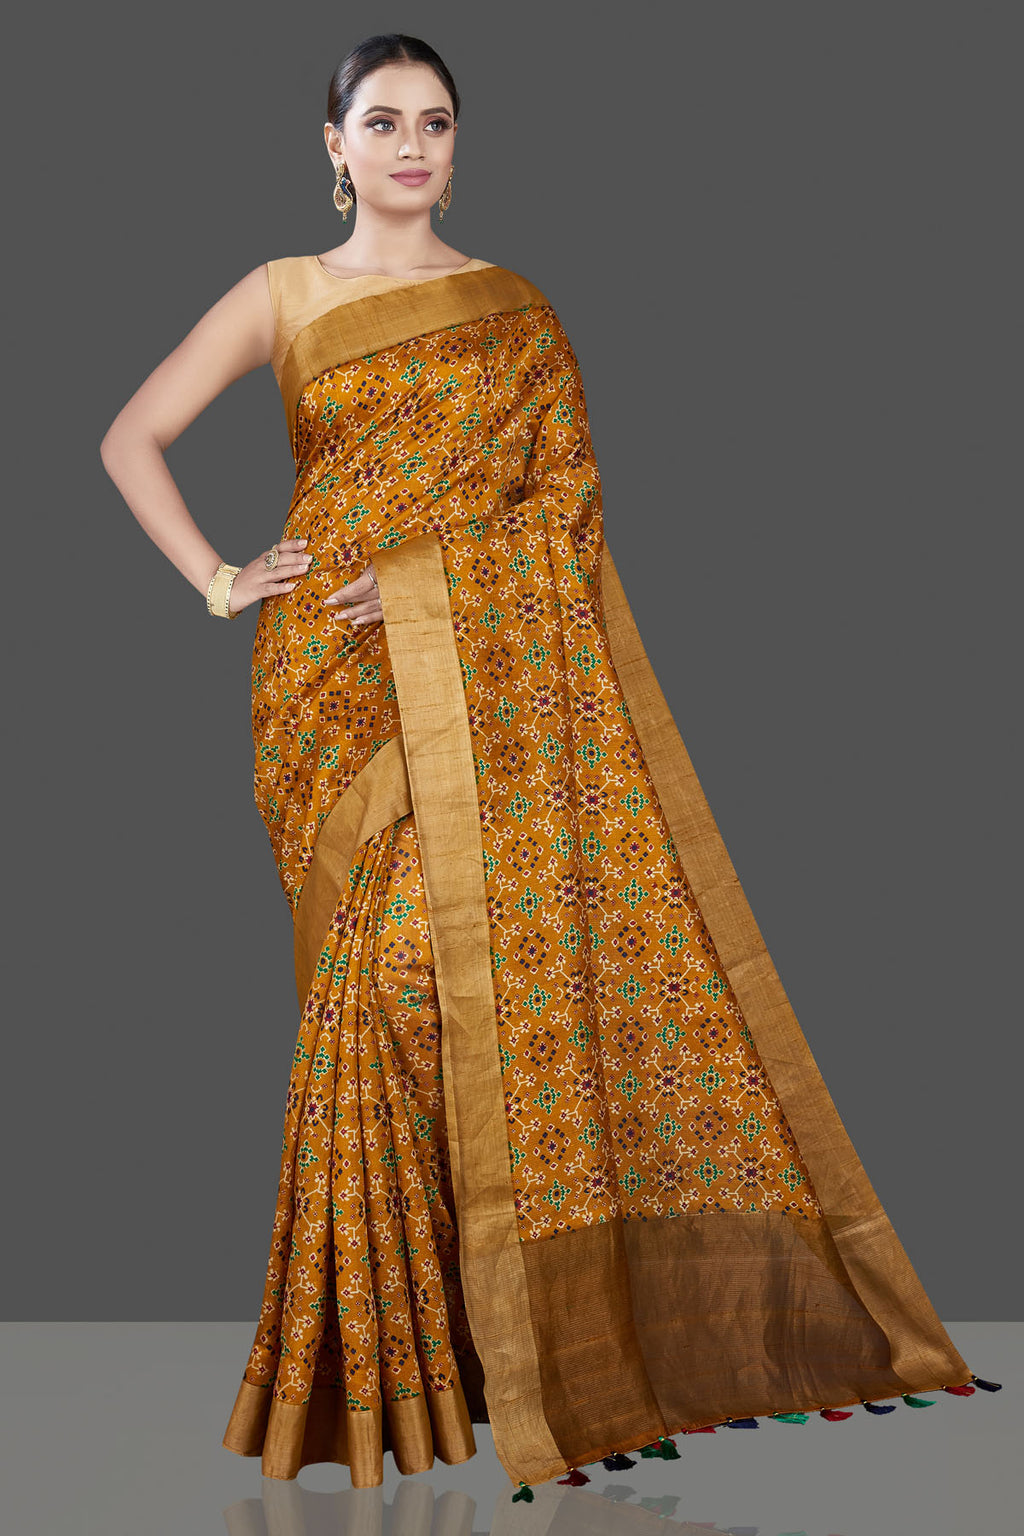 Buy stunning mustard bandhej Patola tussar silk saree online in USA with antique zari border. Be the talk of the occasion in exquisite designer sarees, pure silk sarees, tussar saris, embroidered sarees, handloom sarees from Pure Elegance Indian fashion store in USA.-full view